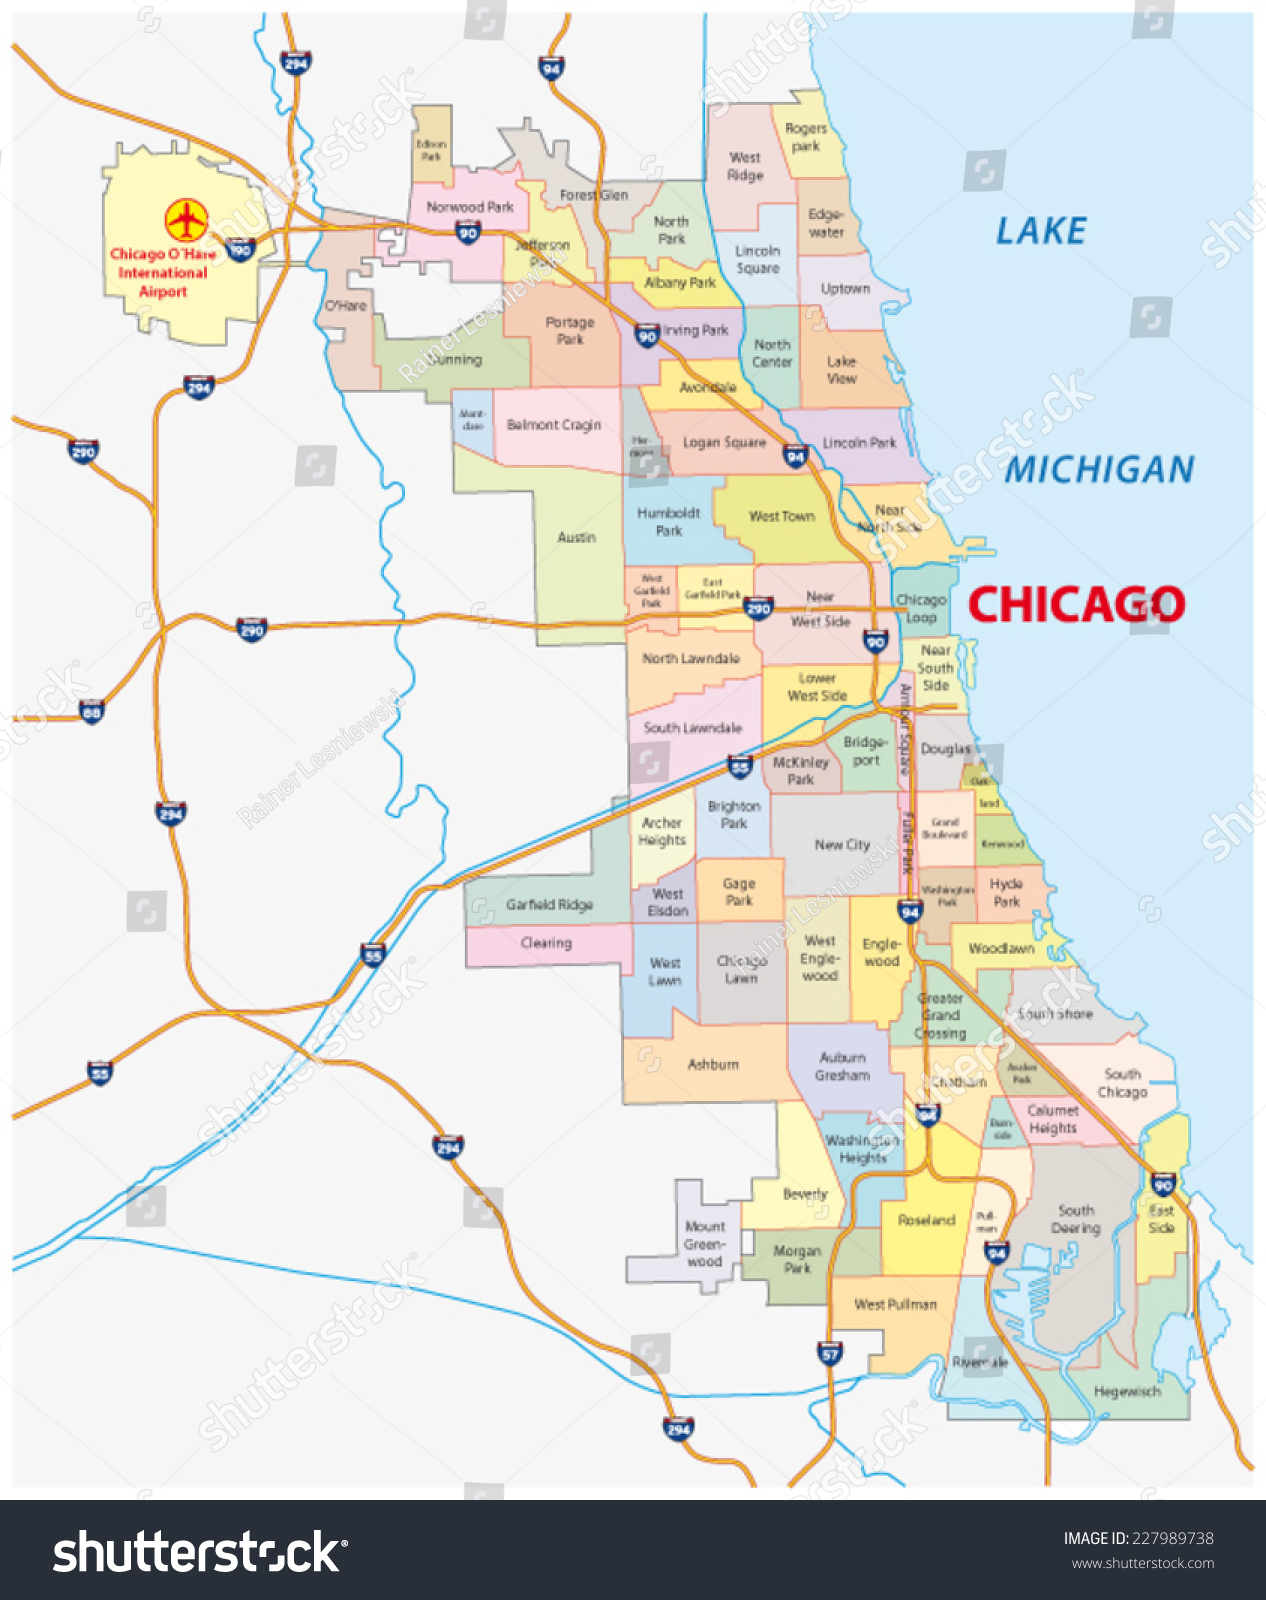 Map Of Chicago You Can See A Map Of Many Places On The List On - Chicago map northwest suburbs